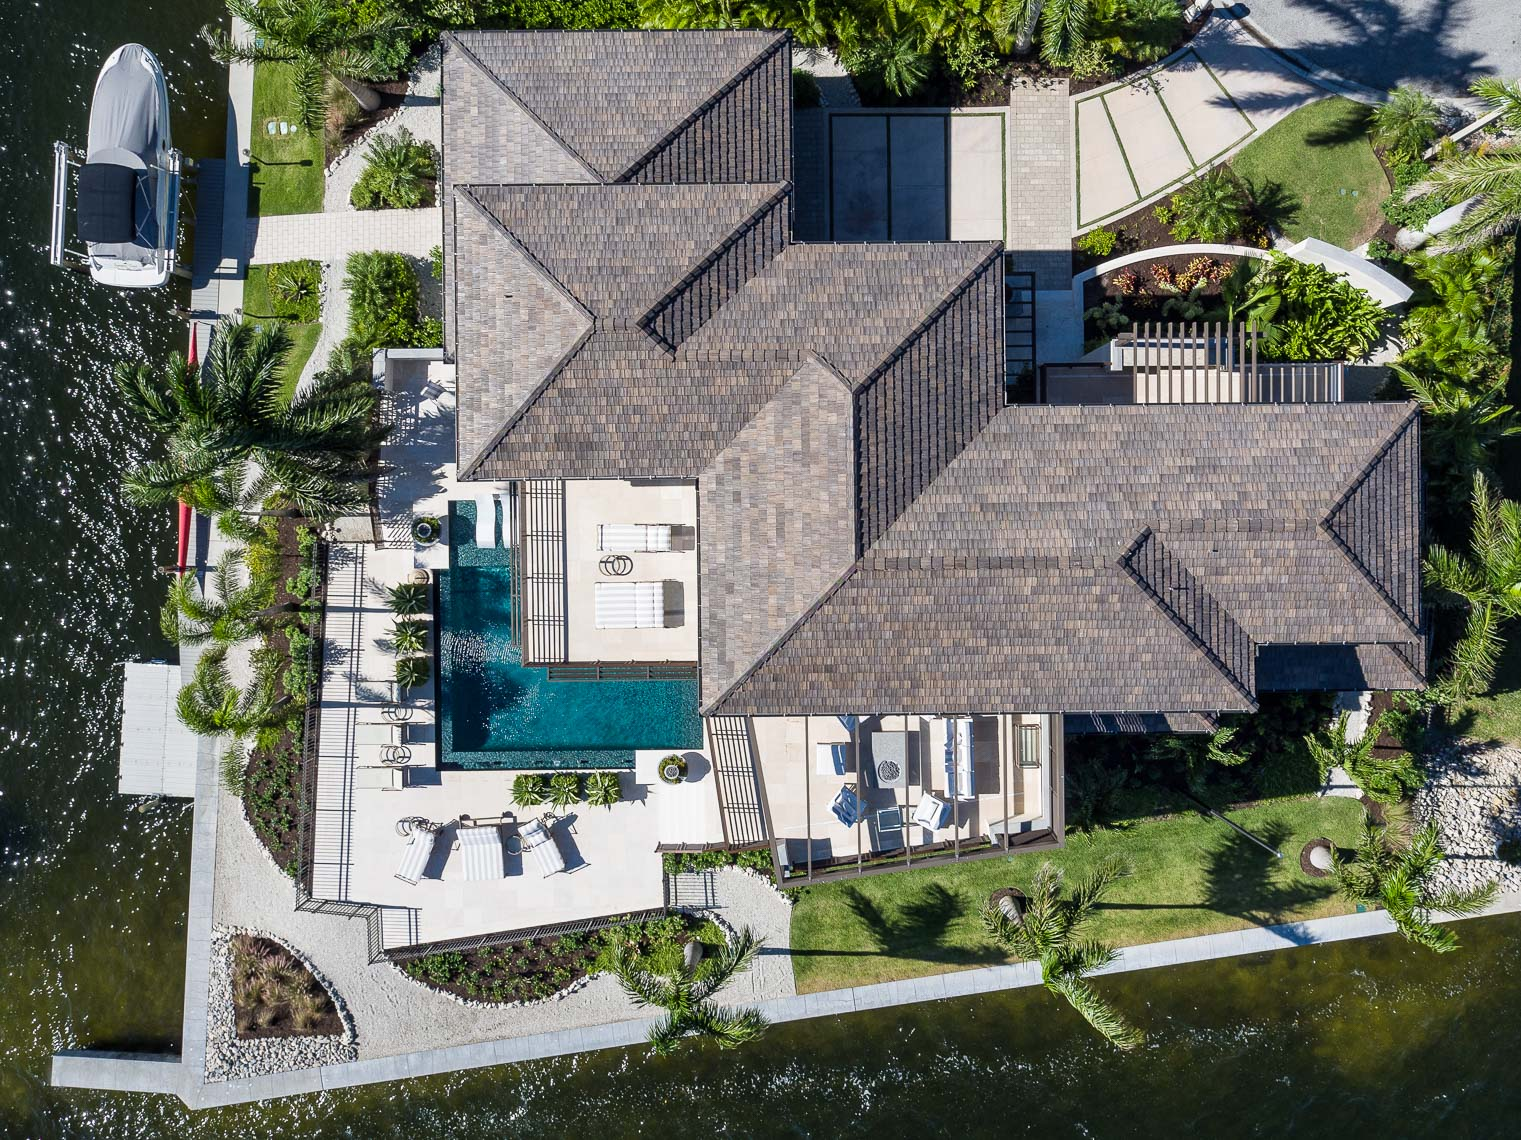 Aerial Custom Waterfront Home - Mark Borosch Photography - Longboat Key, FL